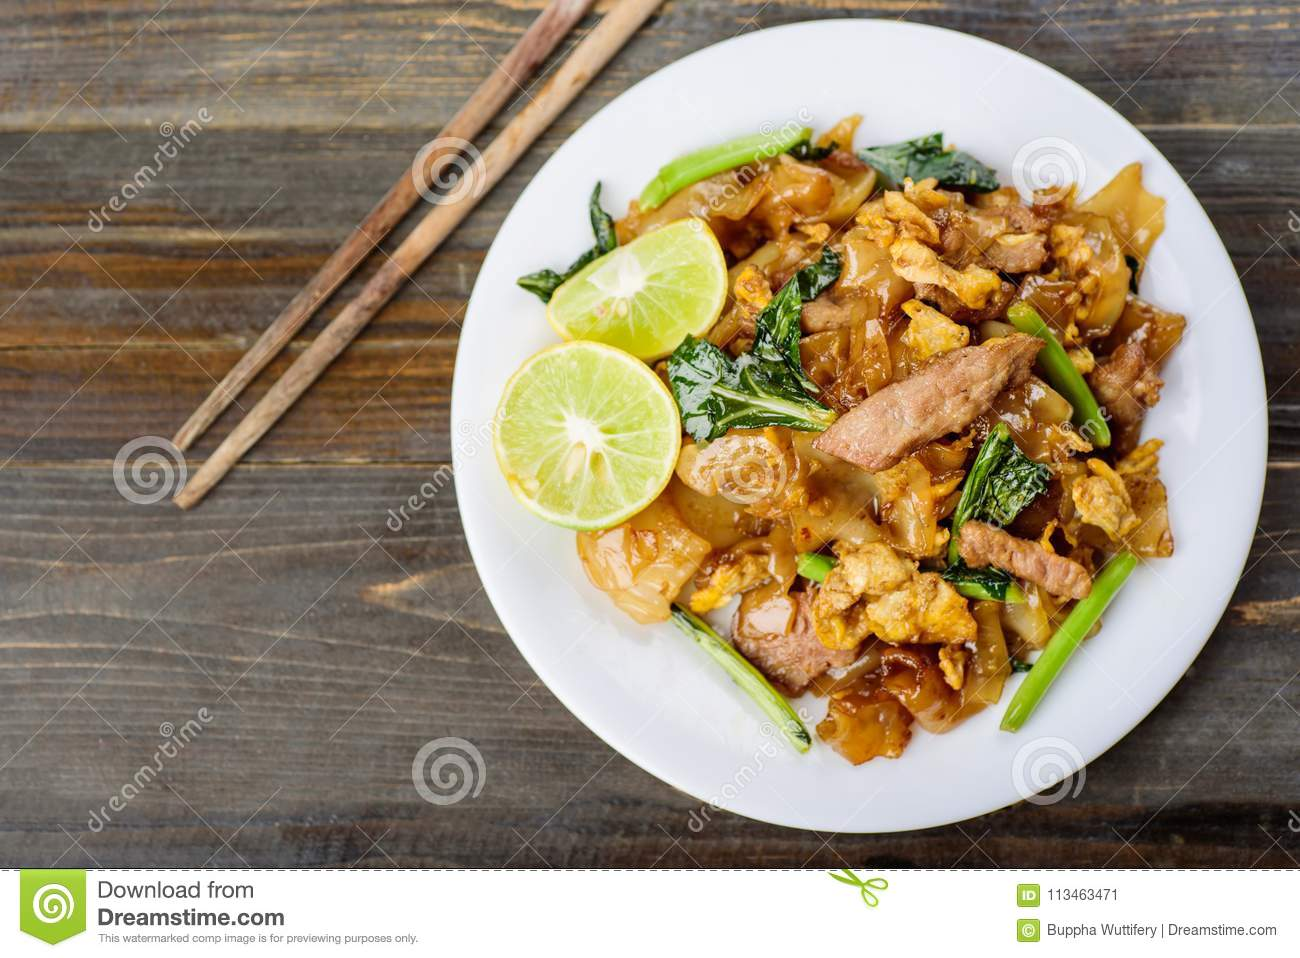 Thai food, stir fried rice noodle in soy sauce